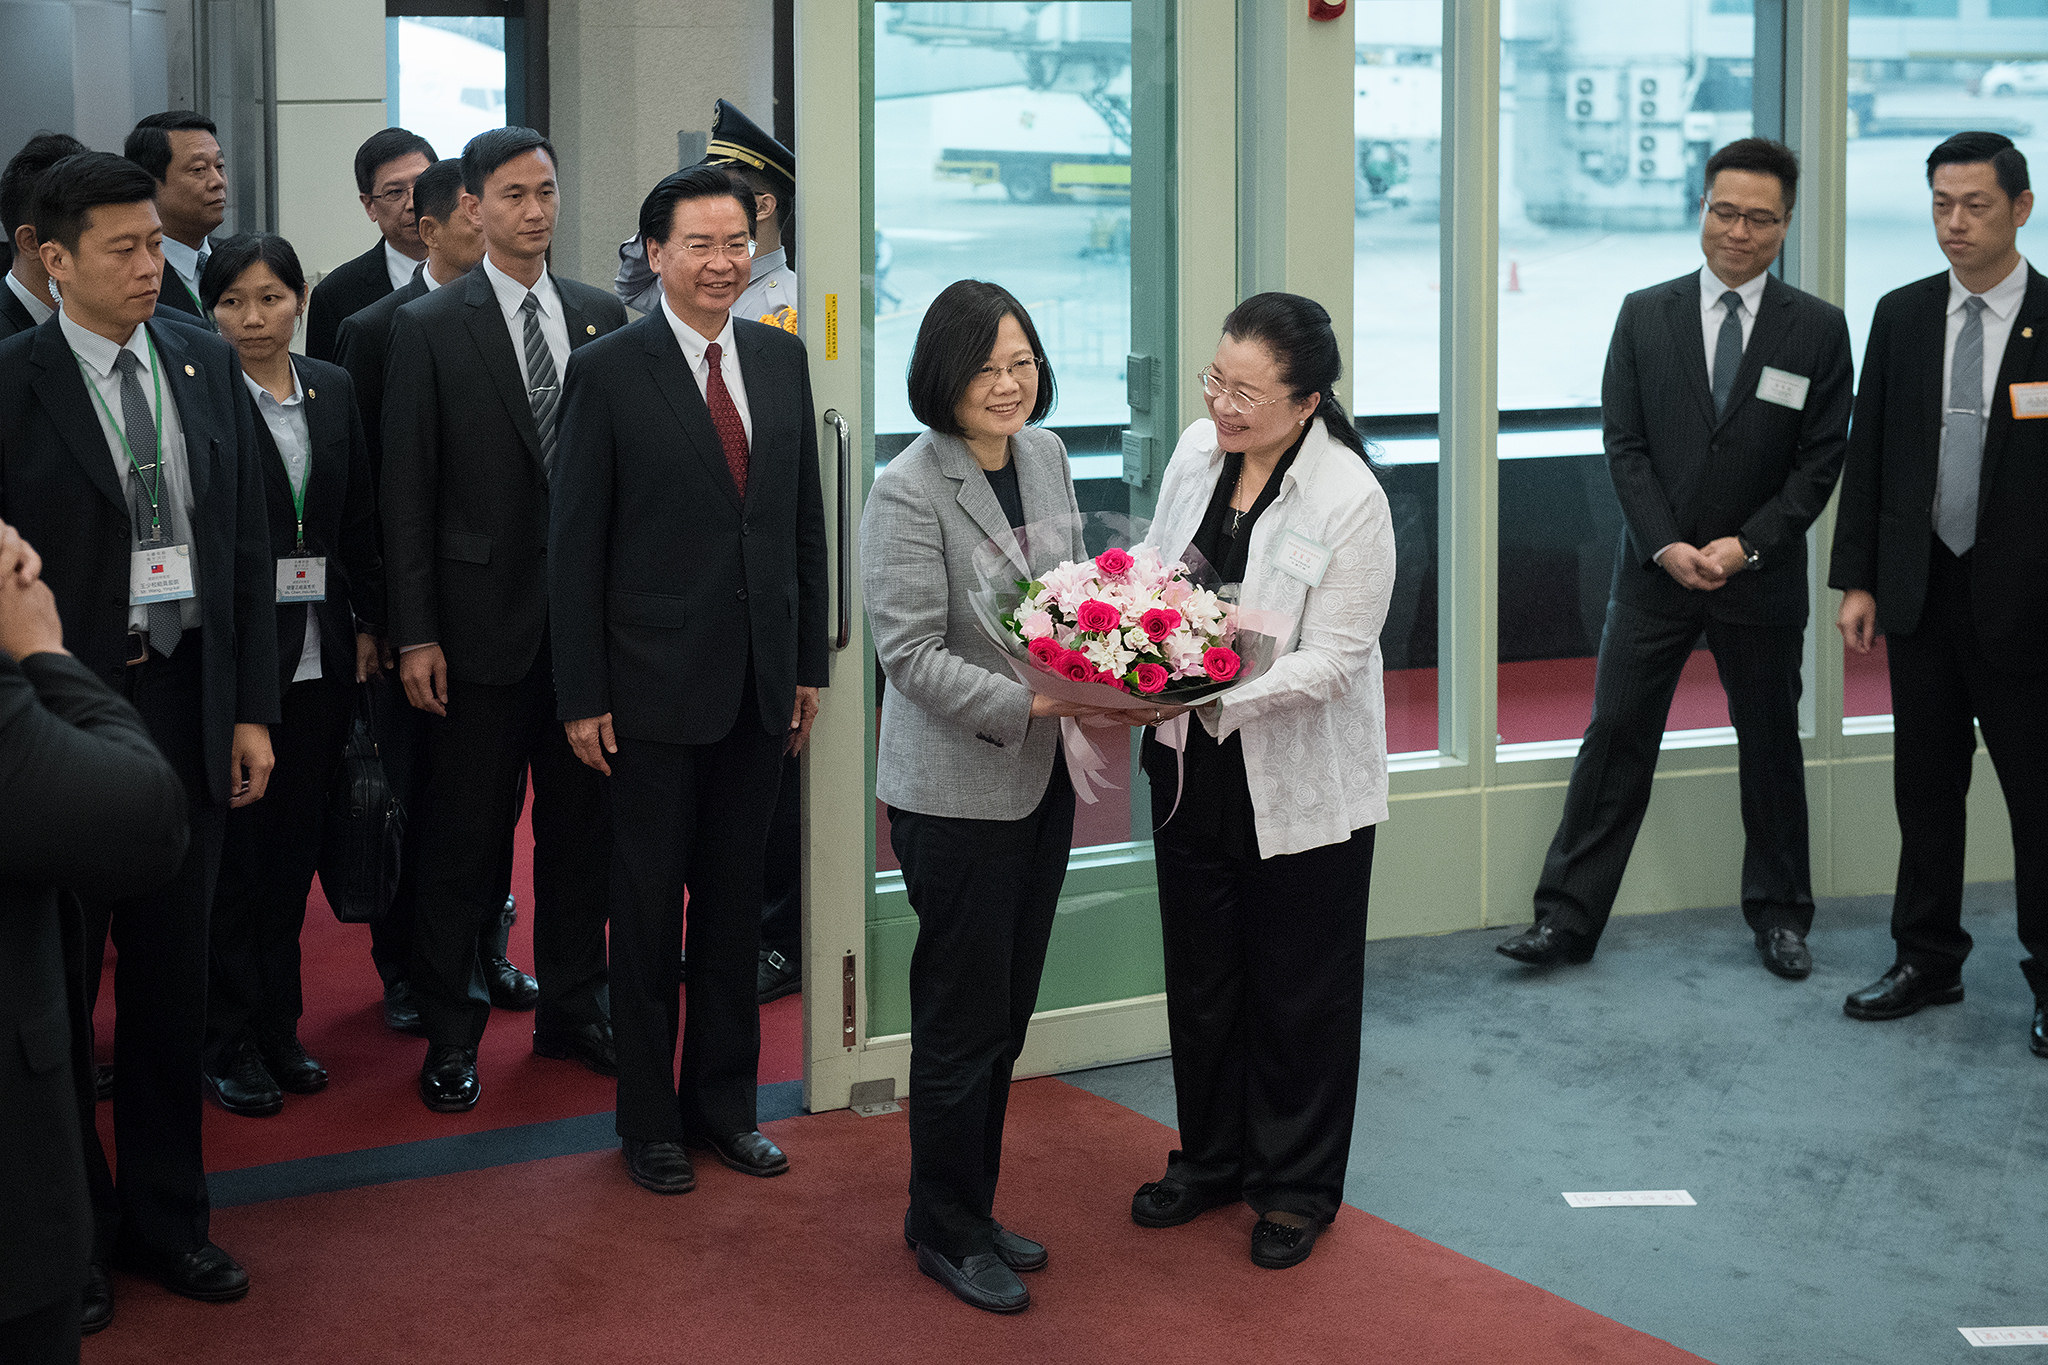 President Tsai's remarks upon returning to Taiwan